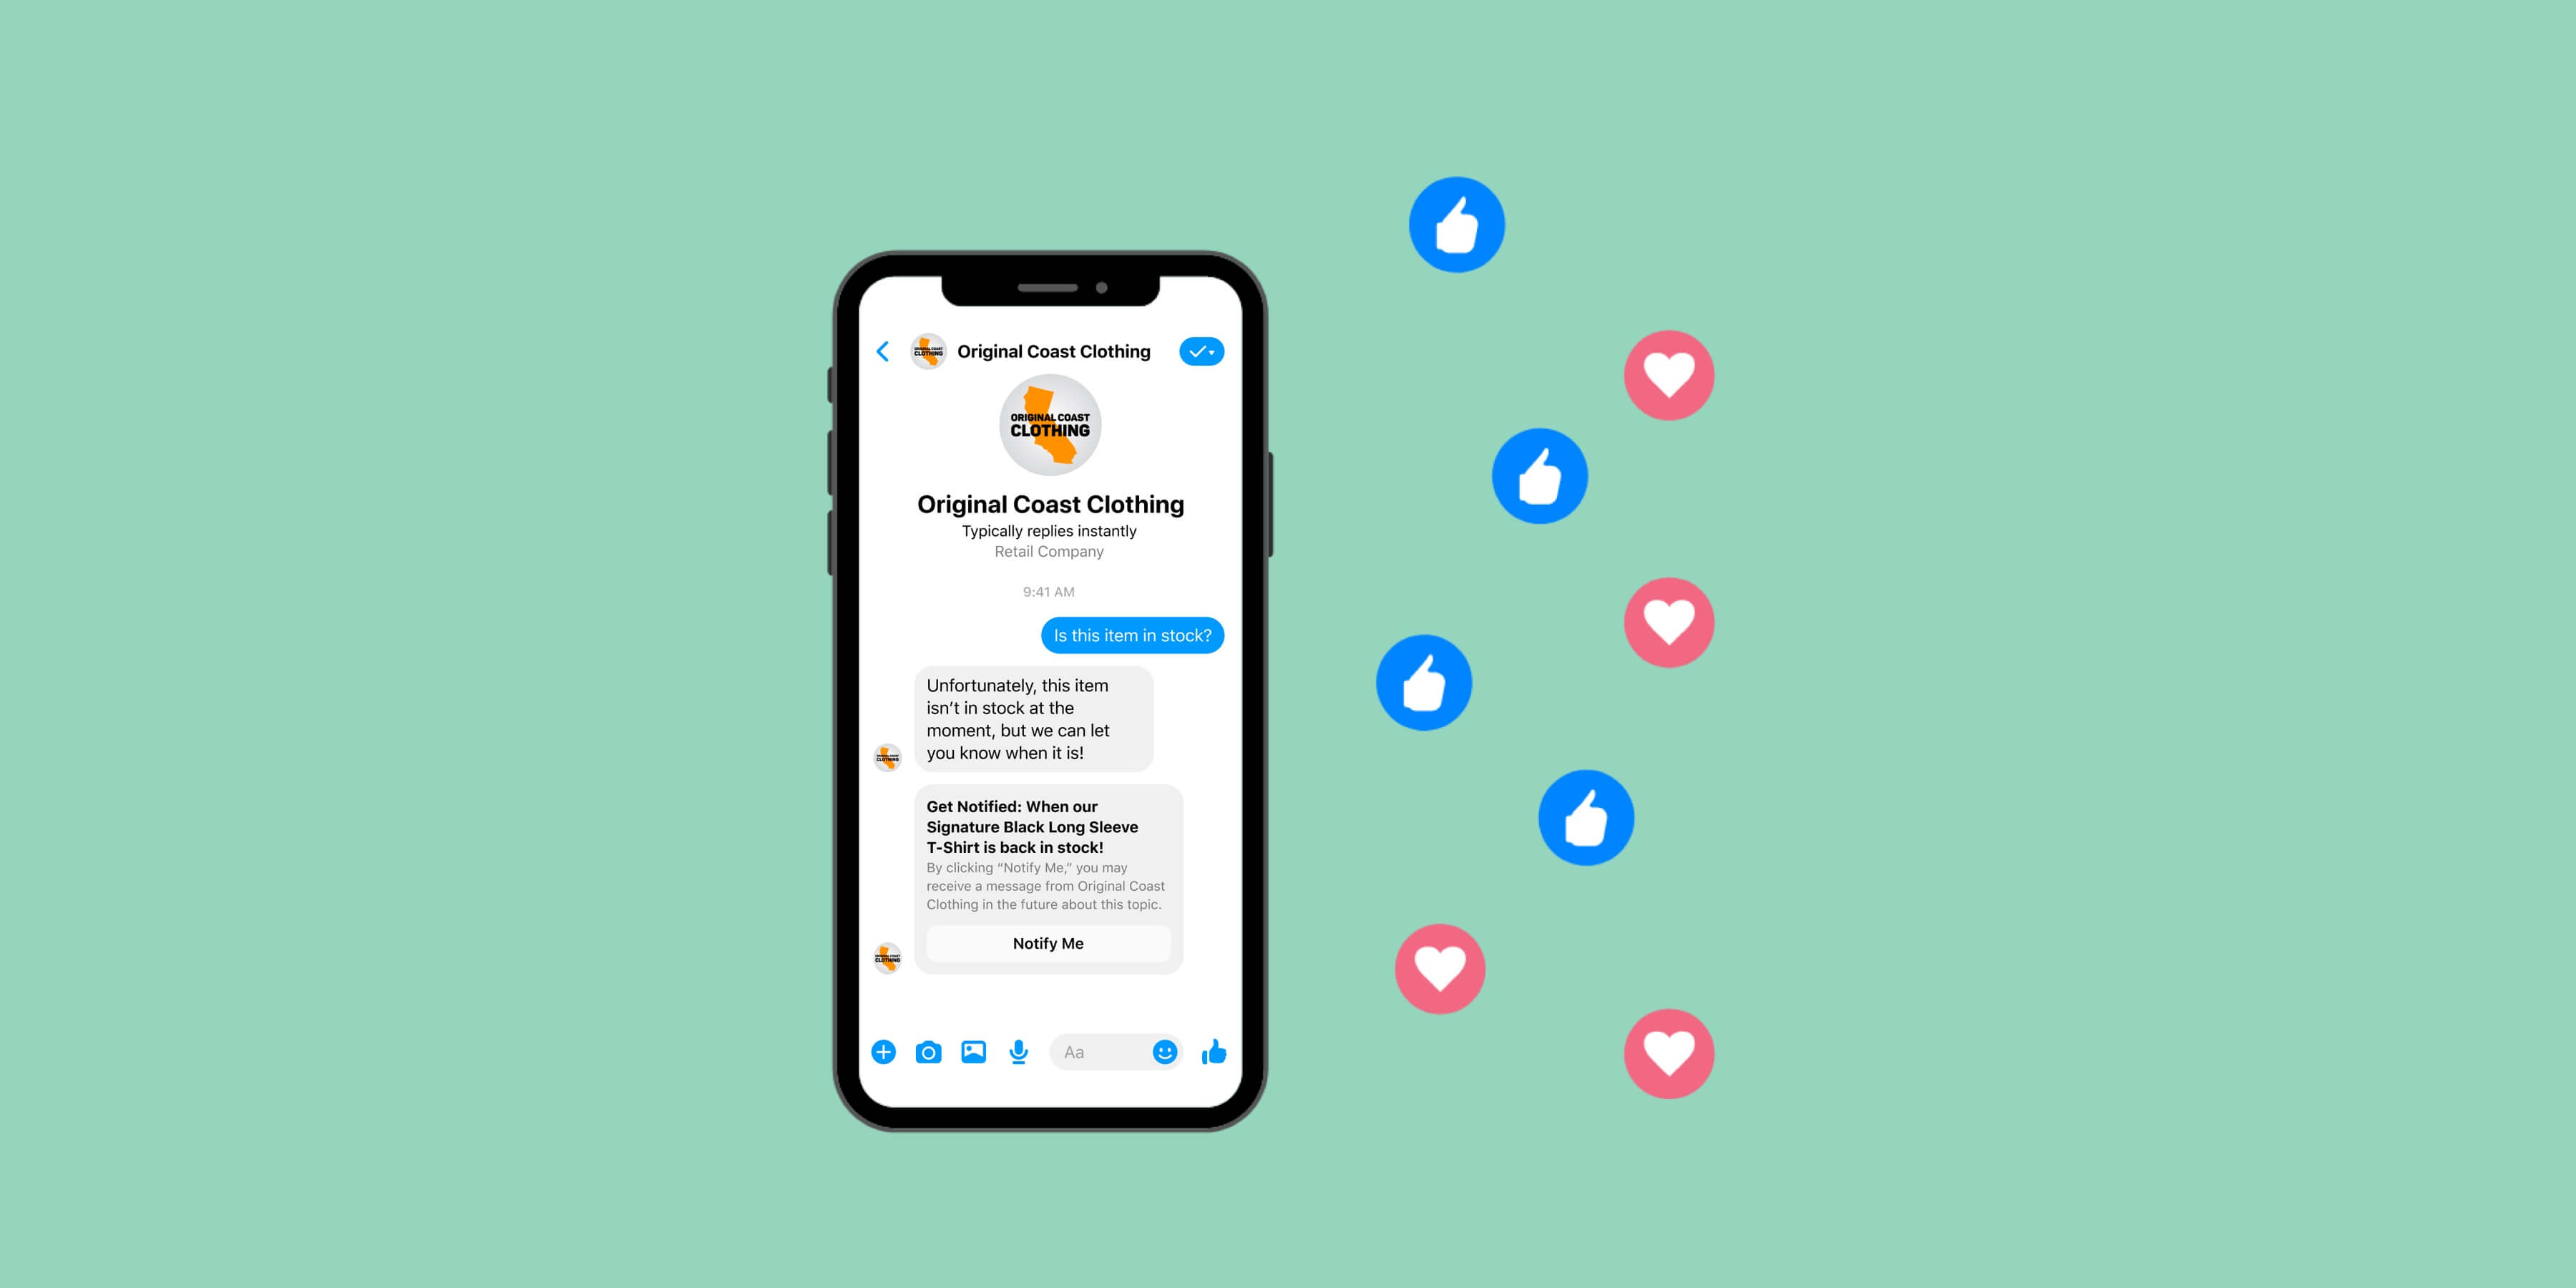 Neuer Facebook Messenger mit Chatbot Plattform